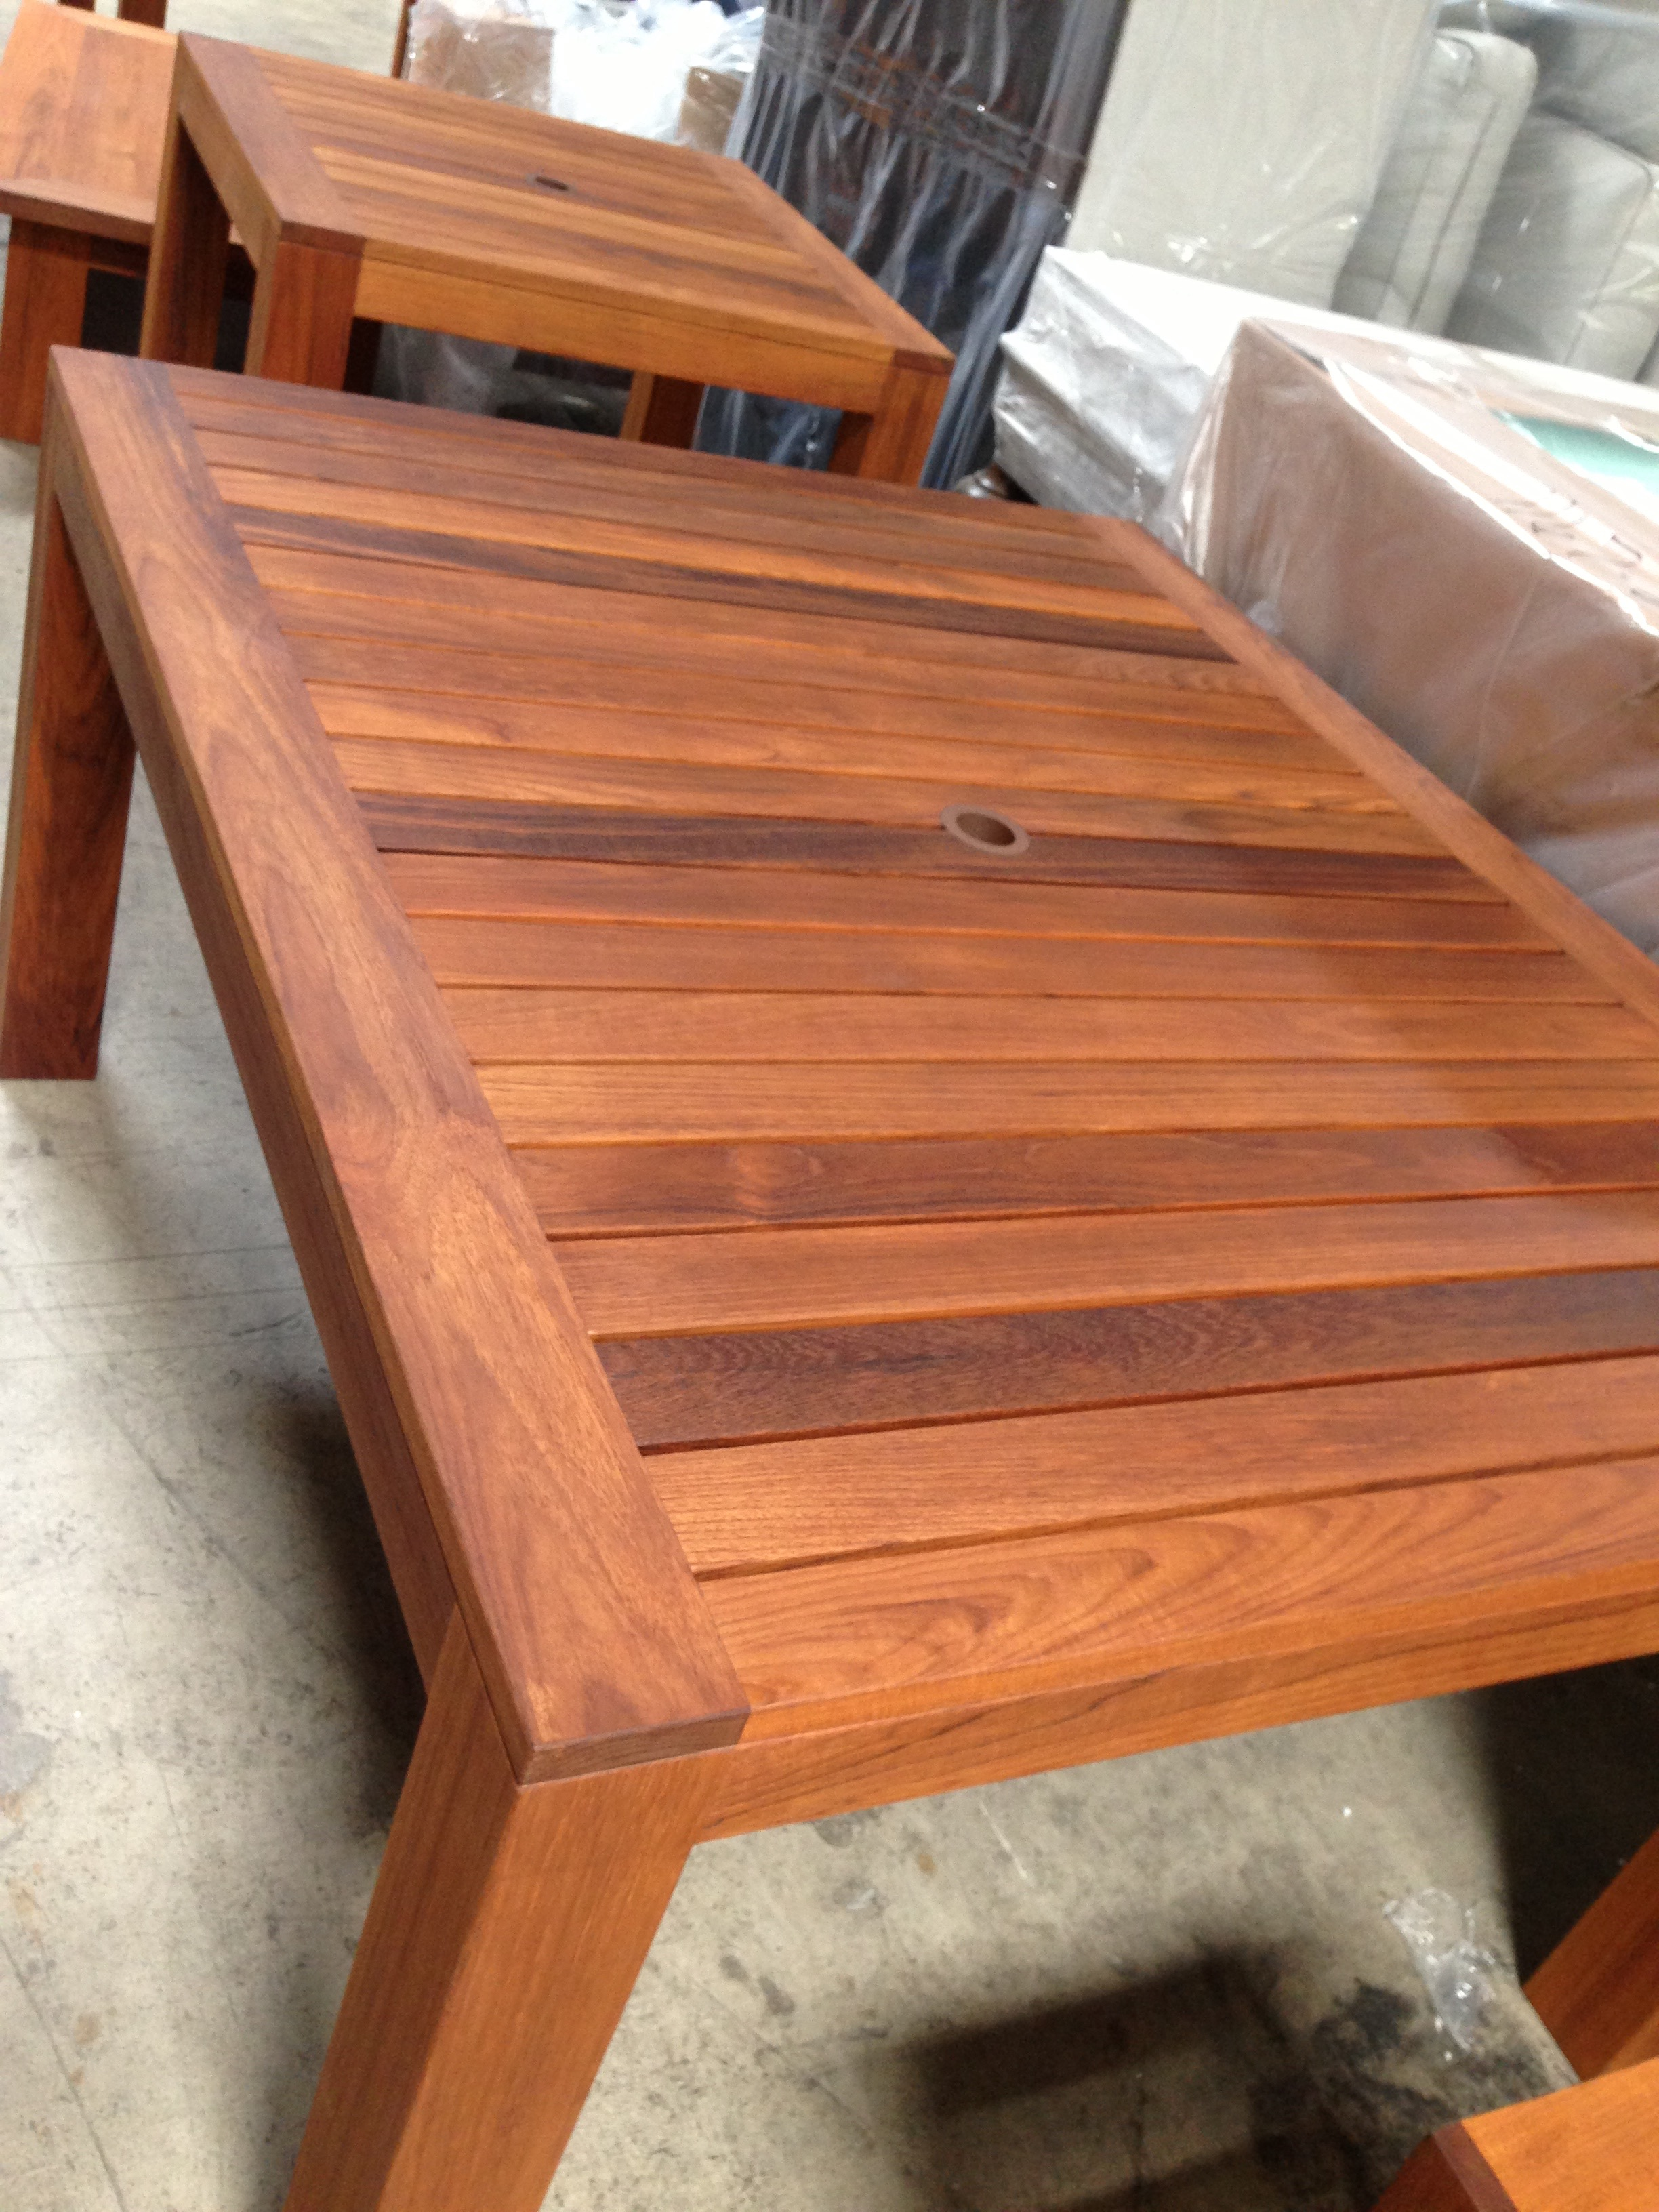 teak furniture img_0708 ... HBYFCZY